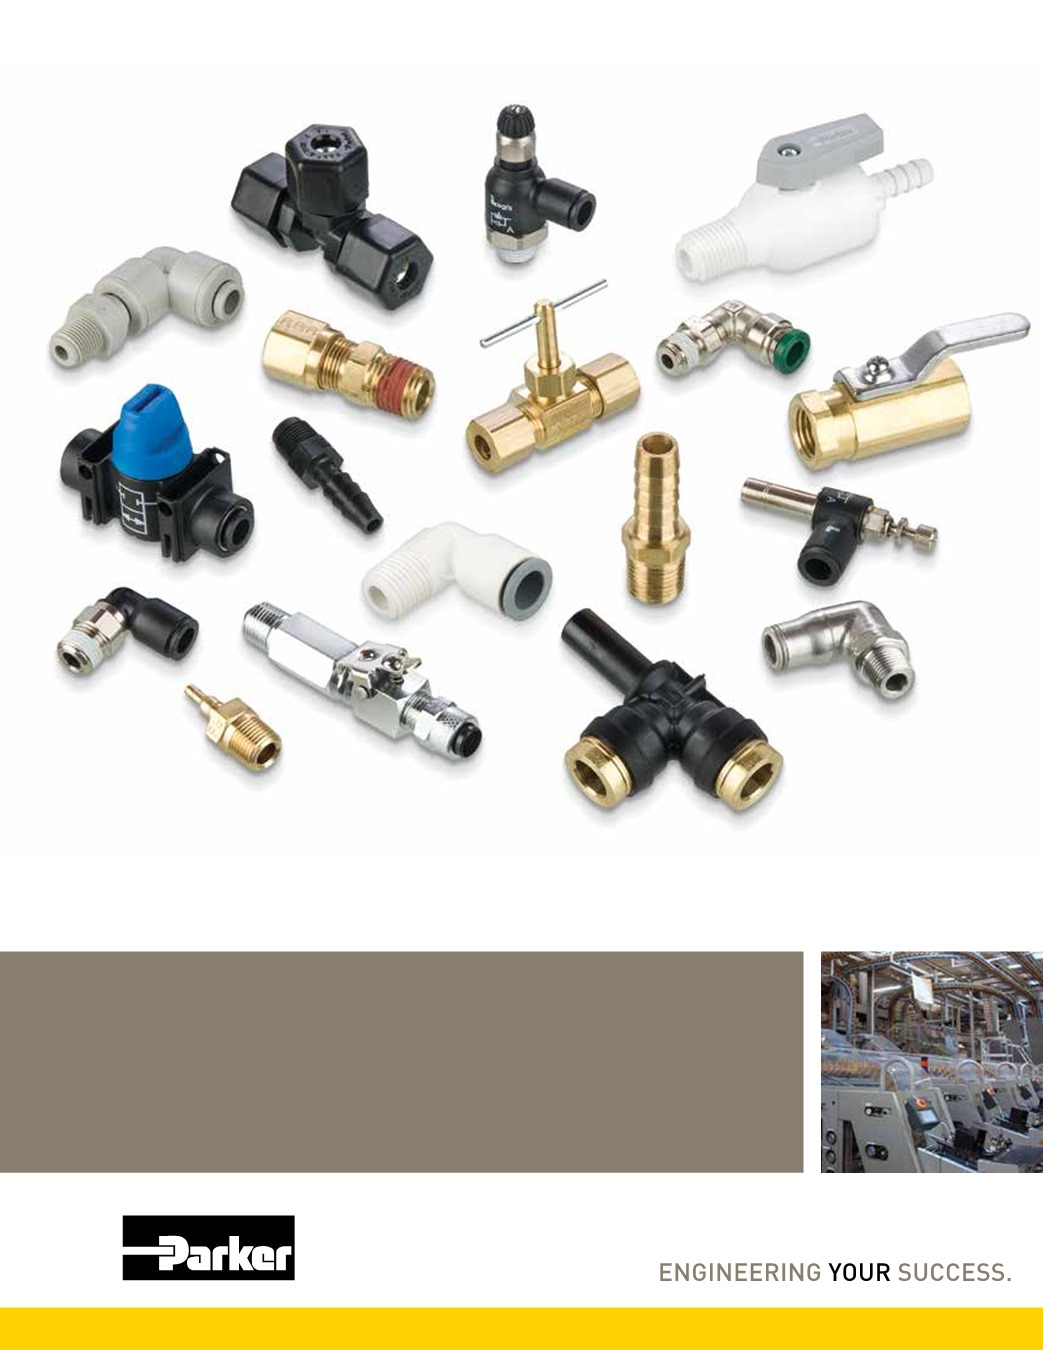 Parker W68PLPSP-4-4 Composite Push-to-Connect Fitting Plug-in Stem and NPT Standpipe 1//4 Tube to Pipe